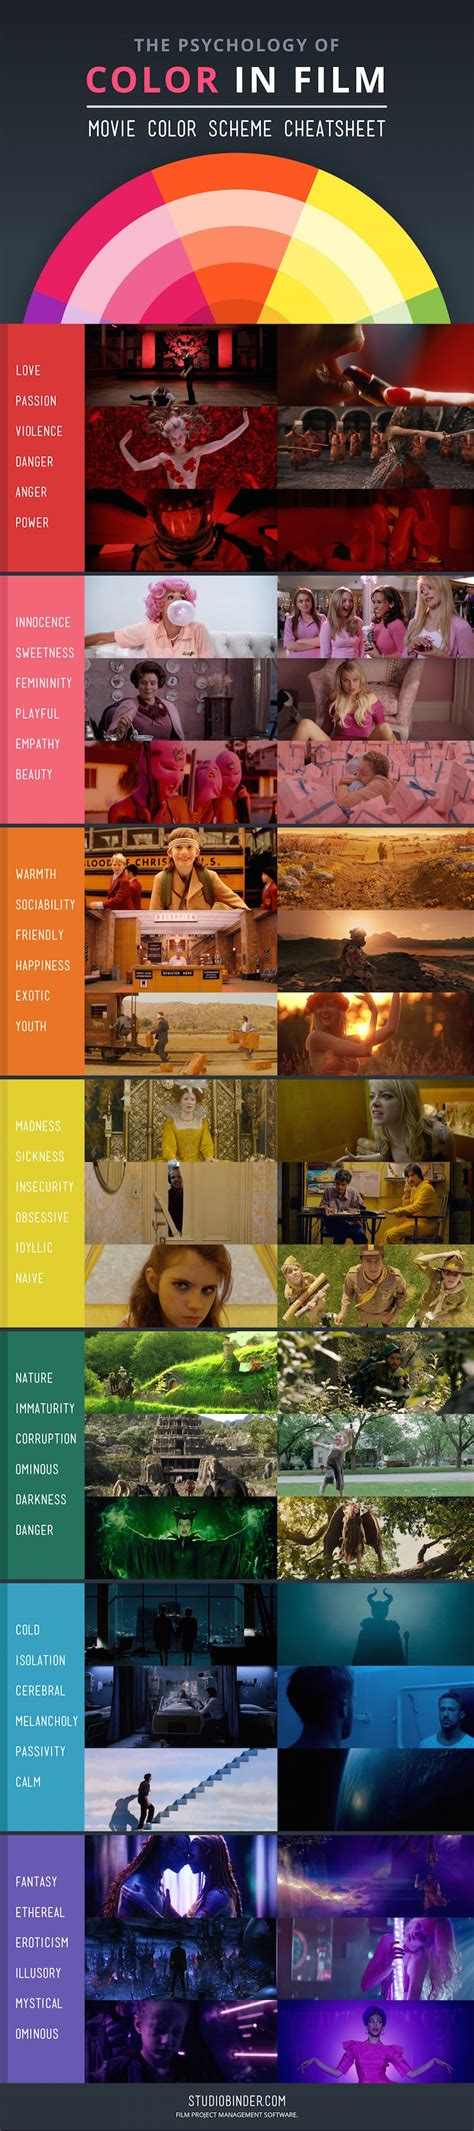 color themes in film how filmmakers use colors to set the mood of a film